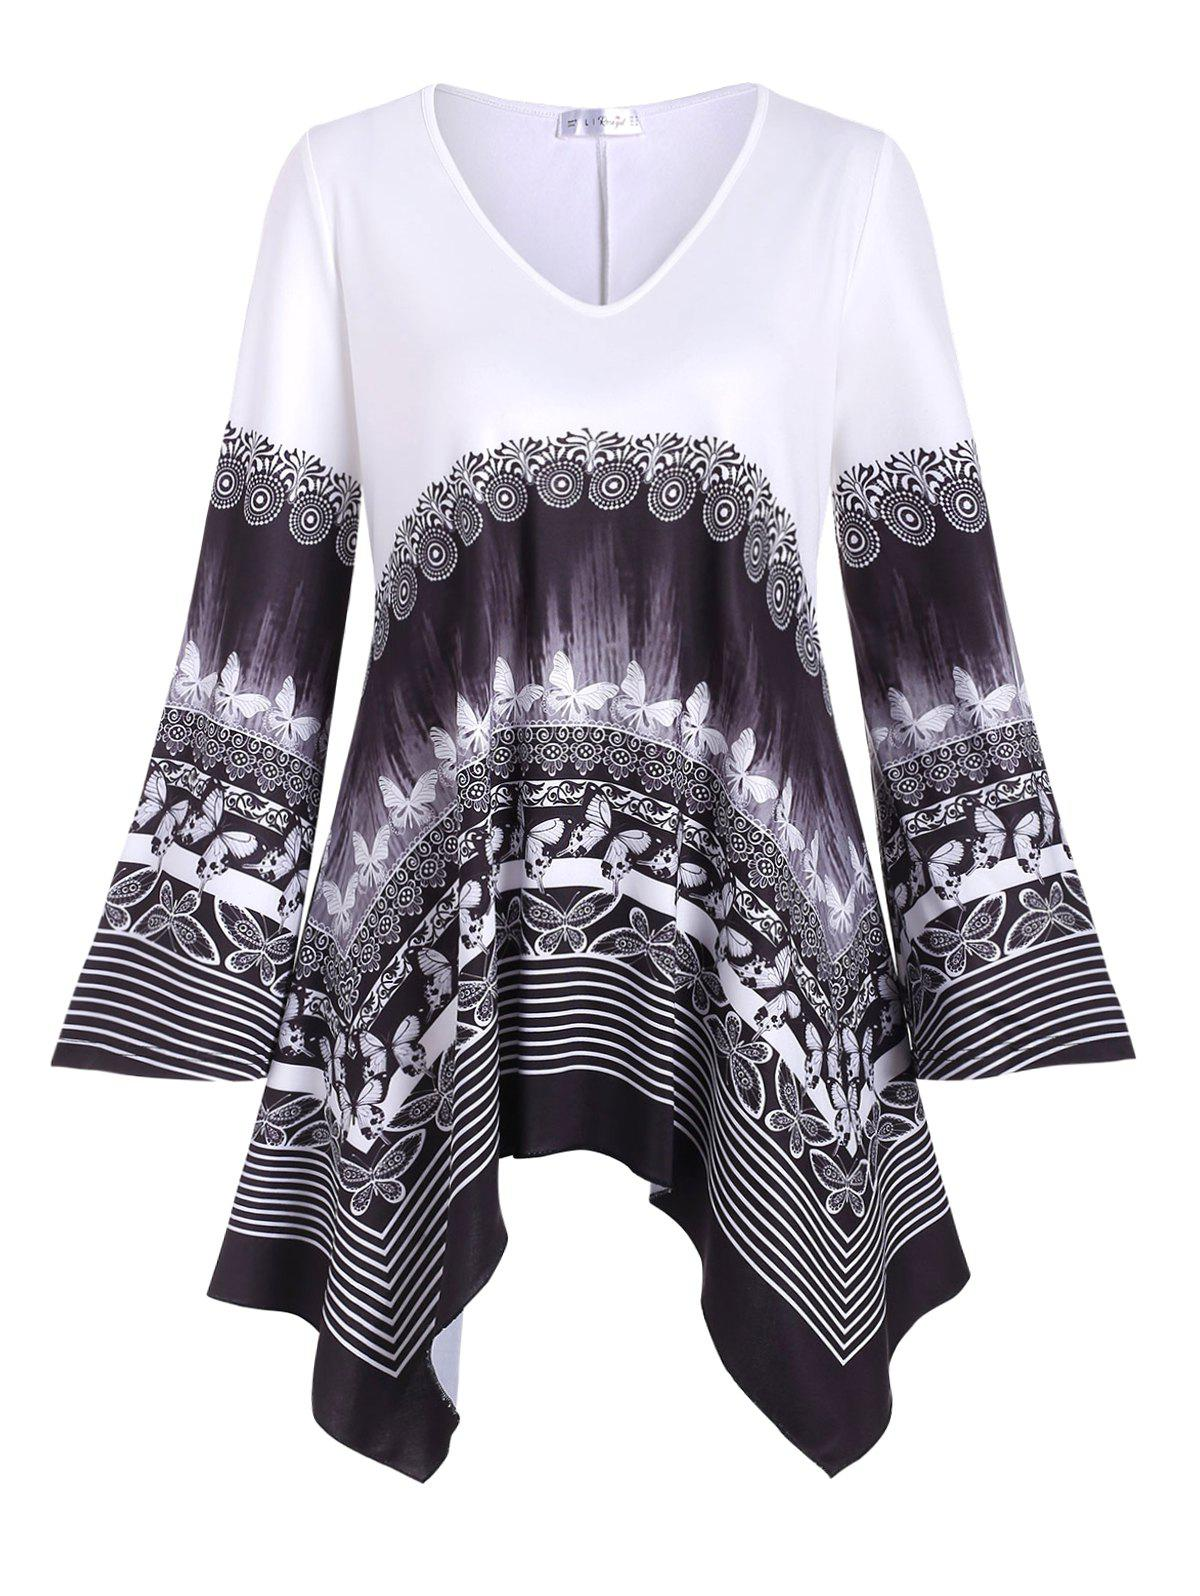 Store Plus Size Handkerchief Butterfly Tribal Print T Shirt